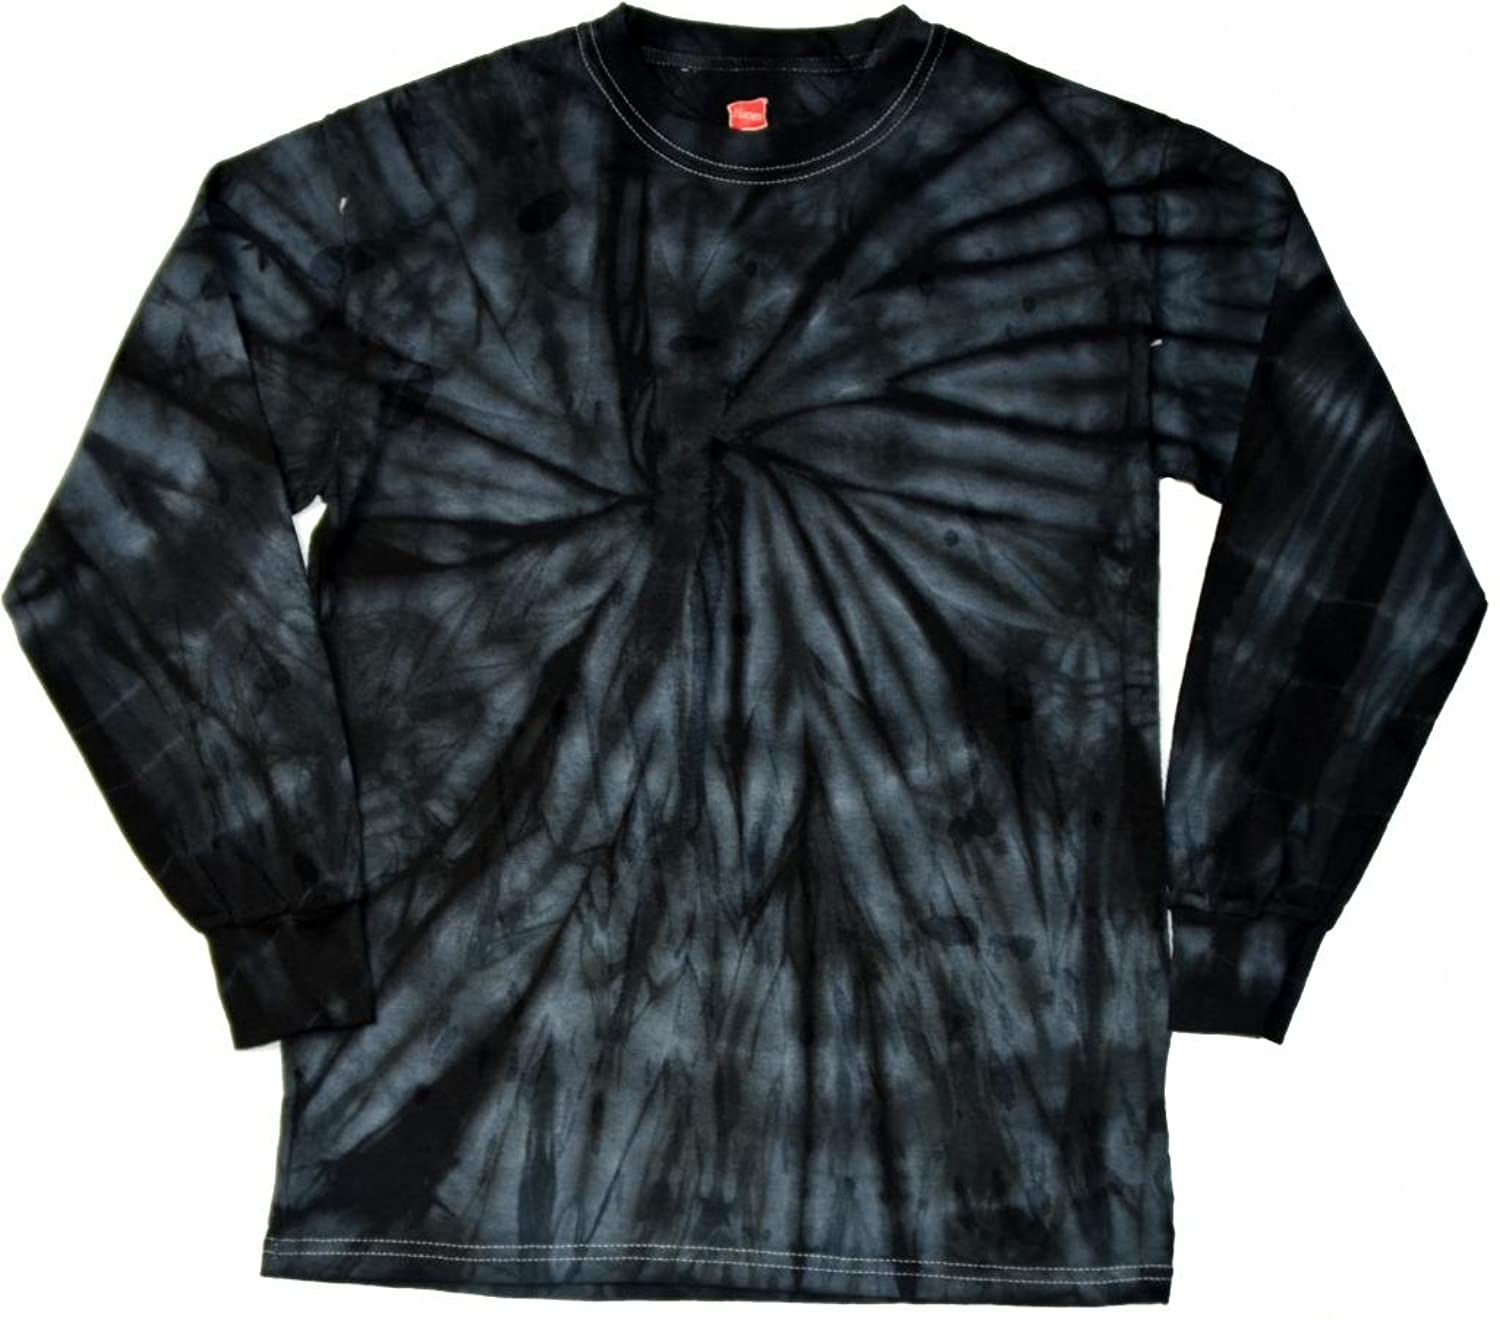 ca089df90 Heavyweight 100% cotton tie dye shirt. Due to tie dye process no two shirts  are exactly alike. Make sure you are purchasing from Buy Cool Shirts for  all ...